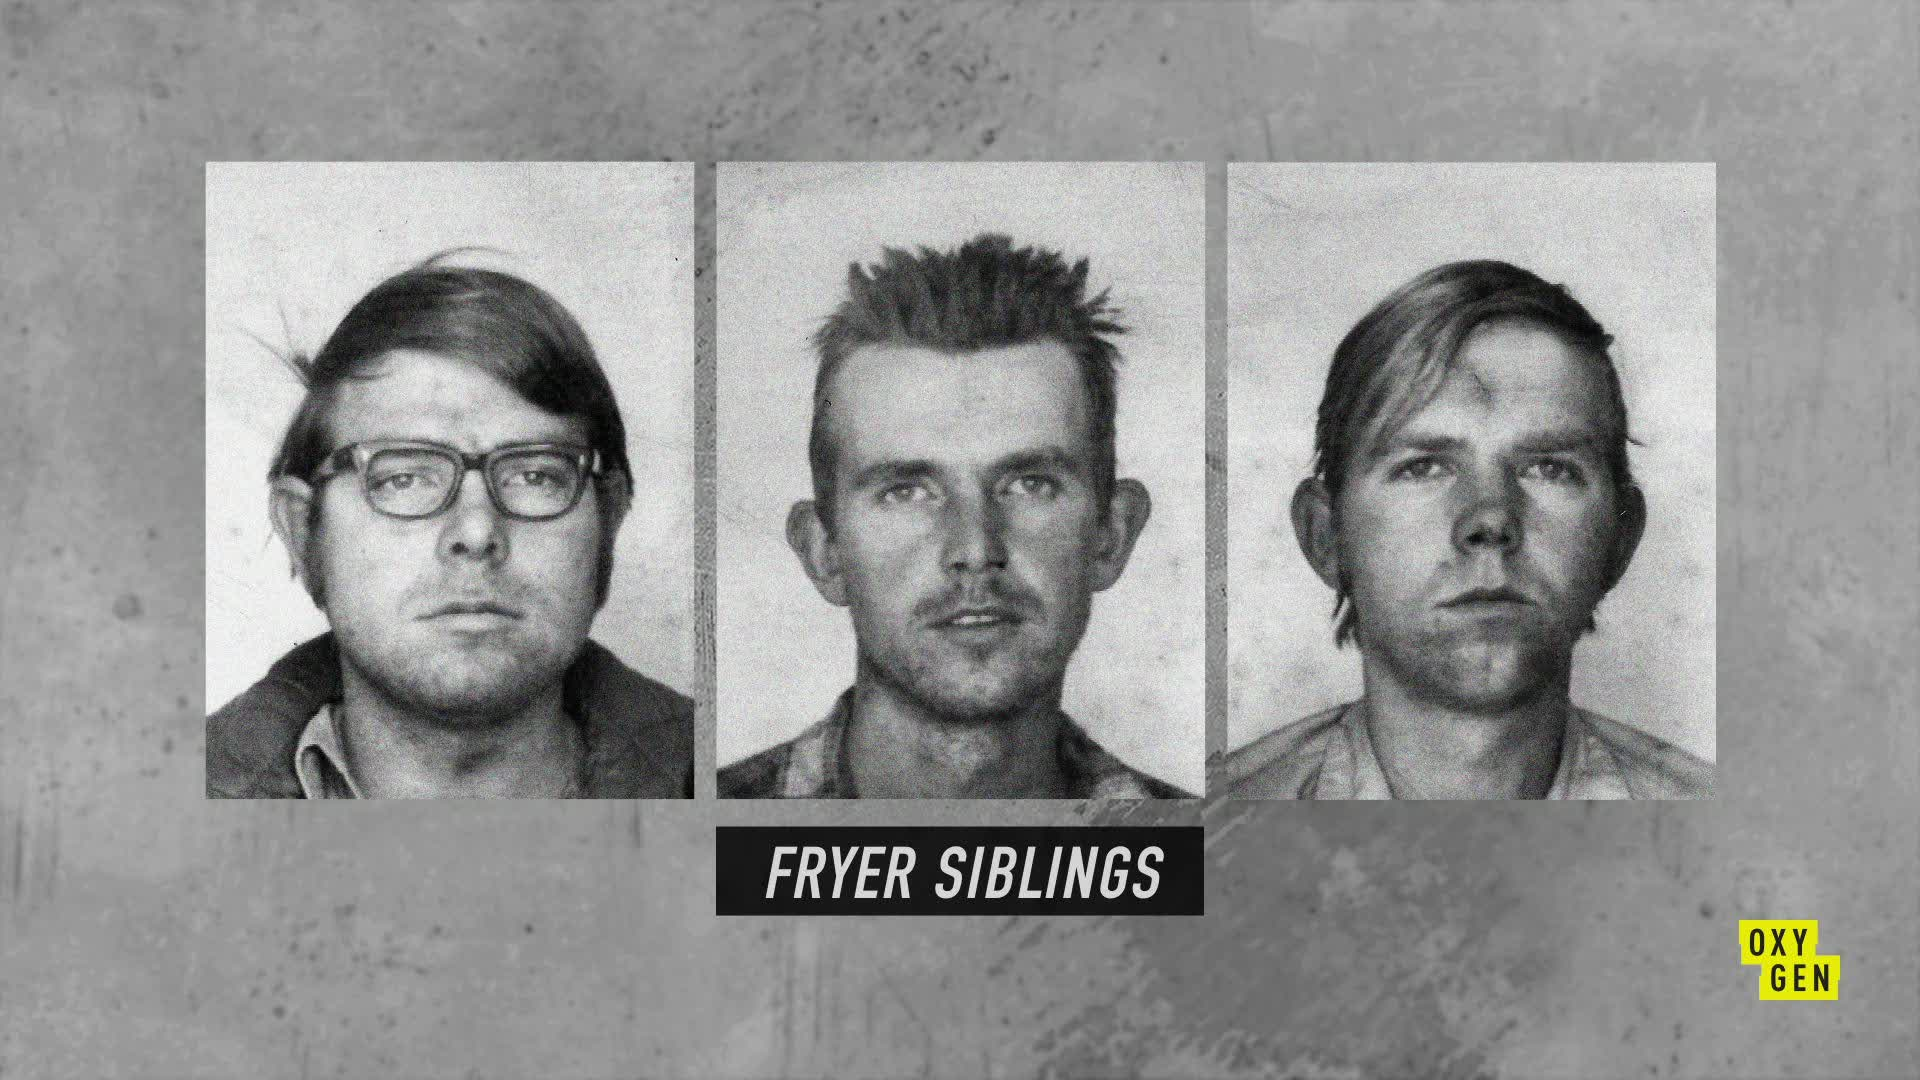 A New Season of Killer Siblings Premieres Saturday, Nov. 7th